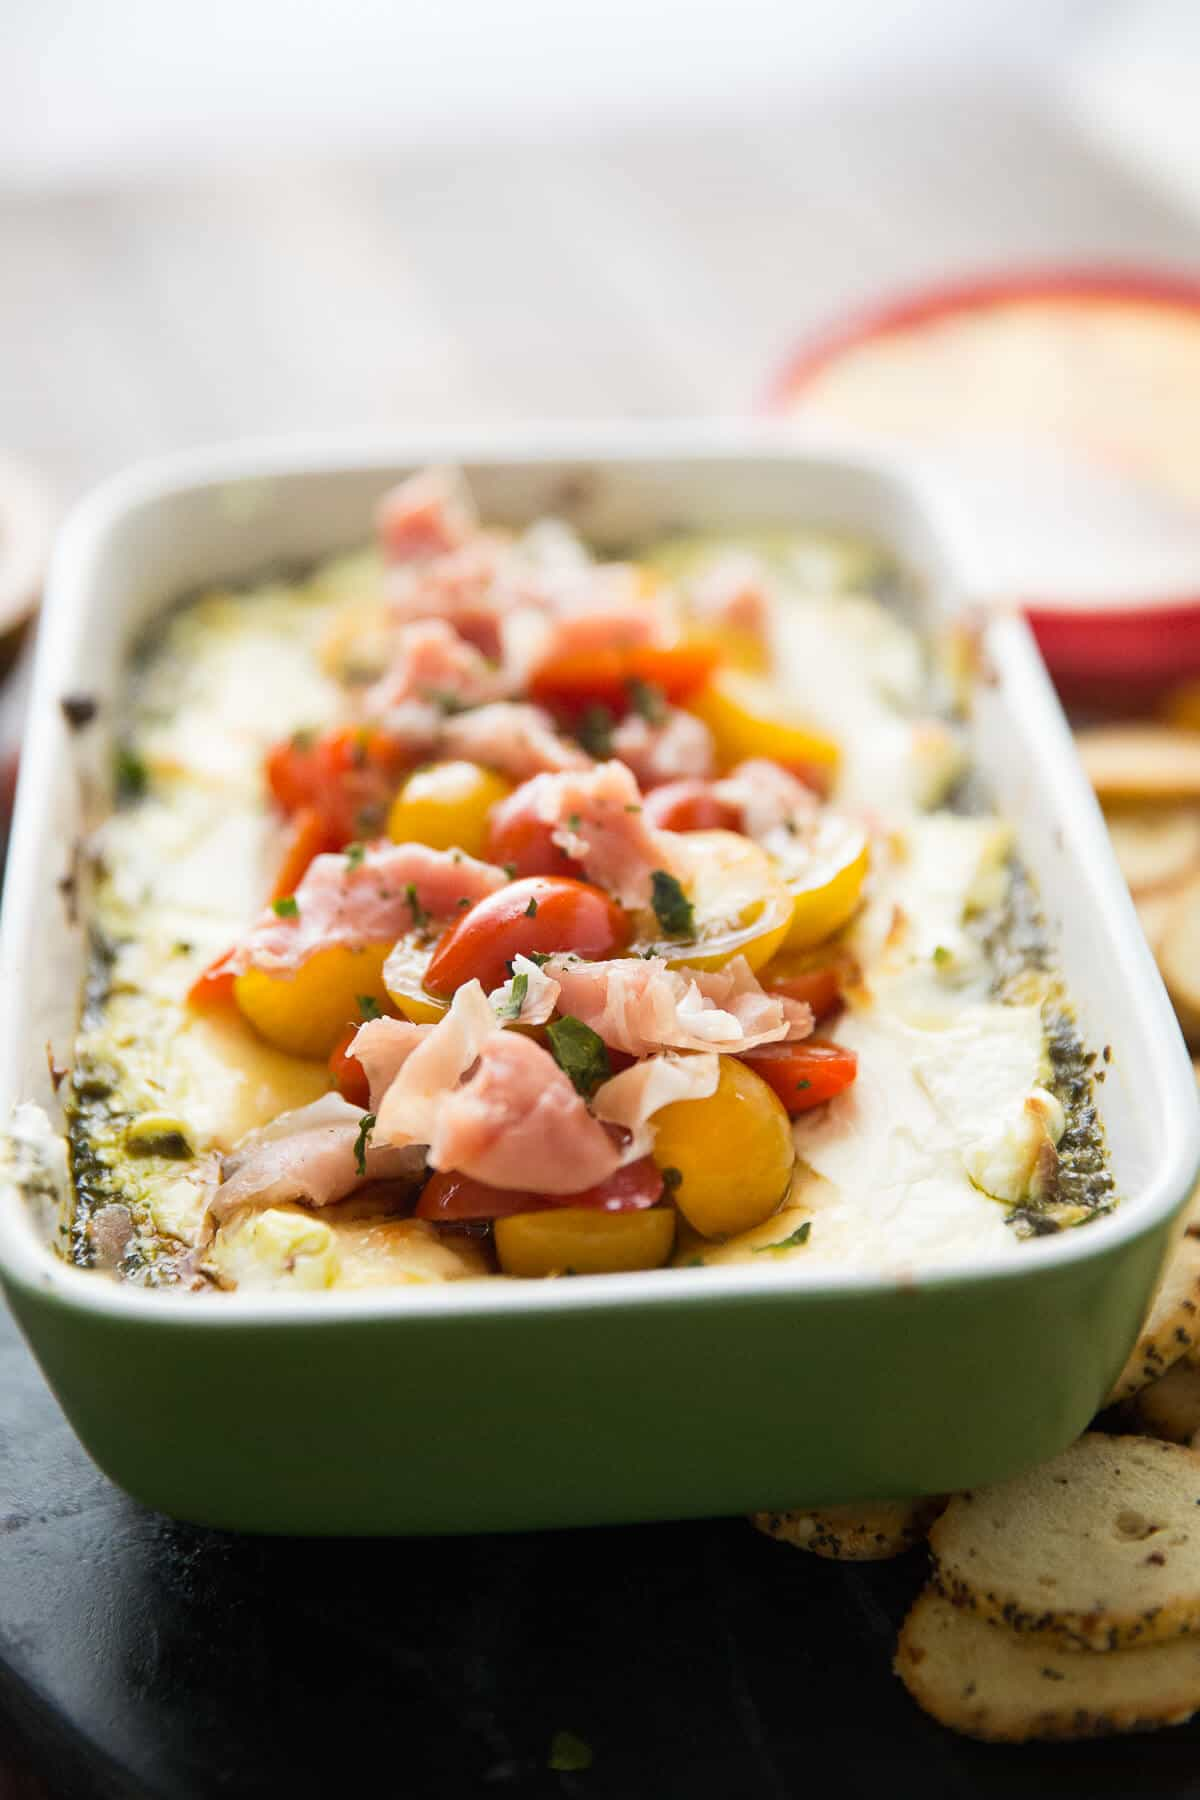 Baked goat cheese is a simple appetizer that everyone will love! It hot and cheesy and so good!